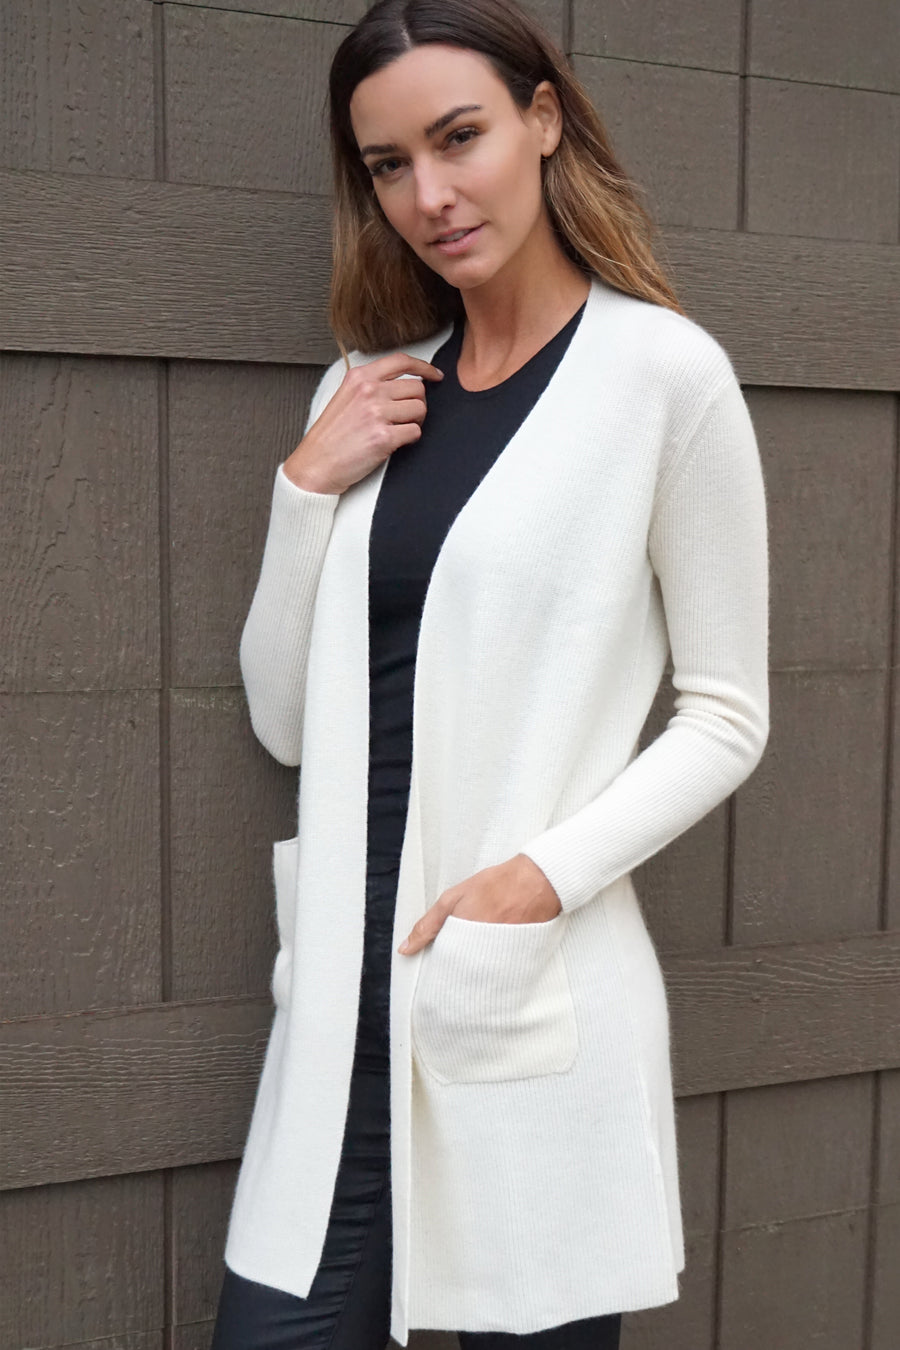 pine cashmere morgan women's 100% pure organic cashmere cardigan sweater in white